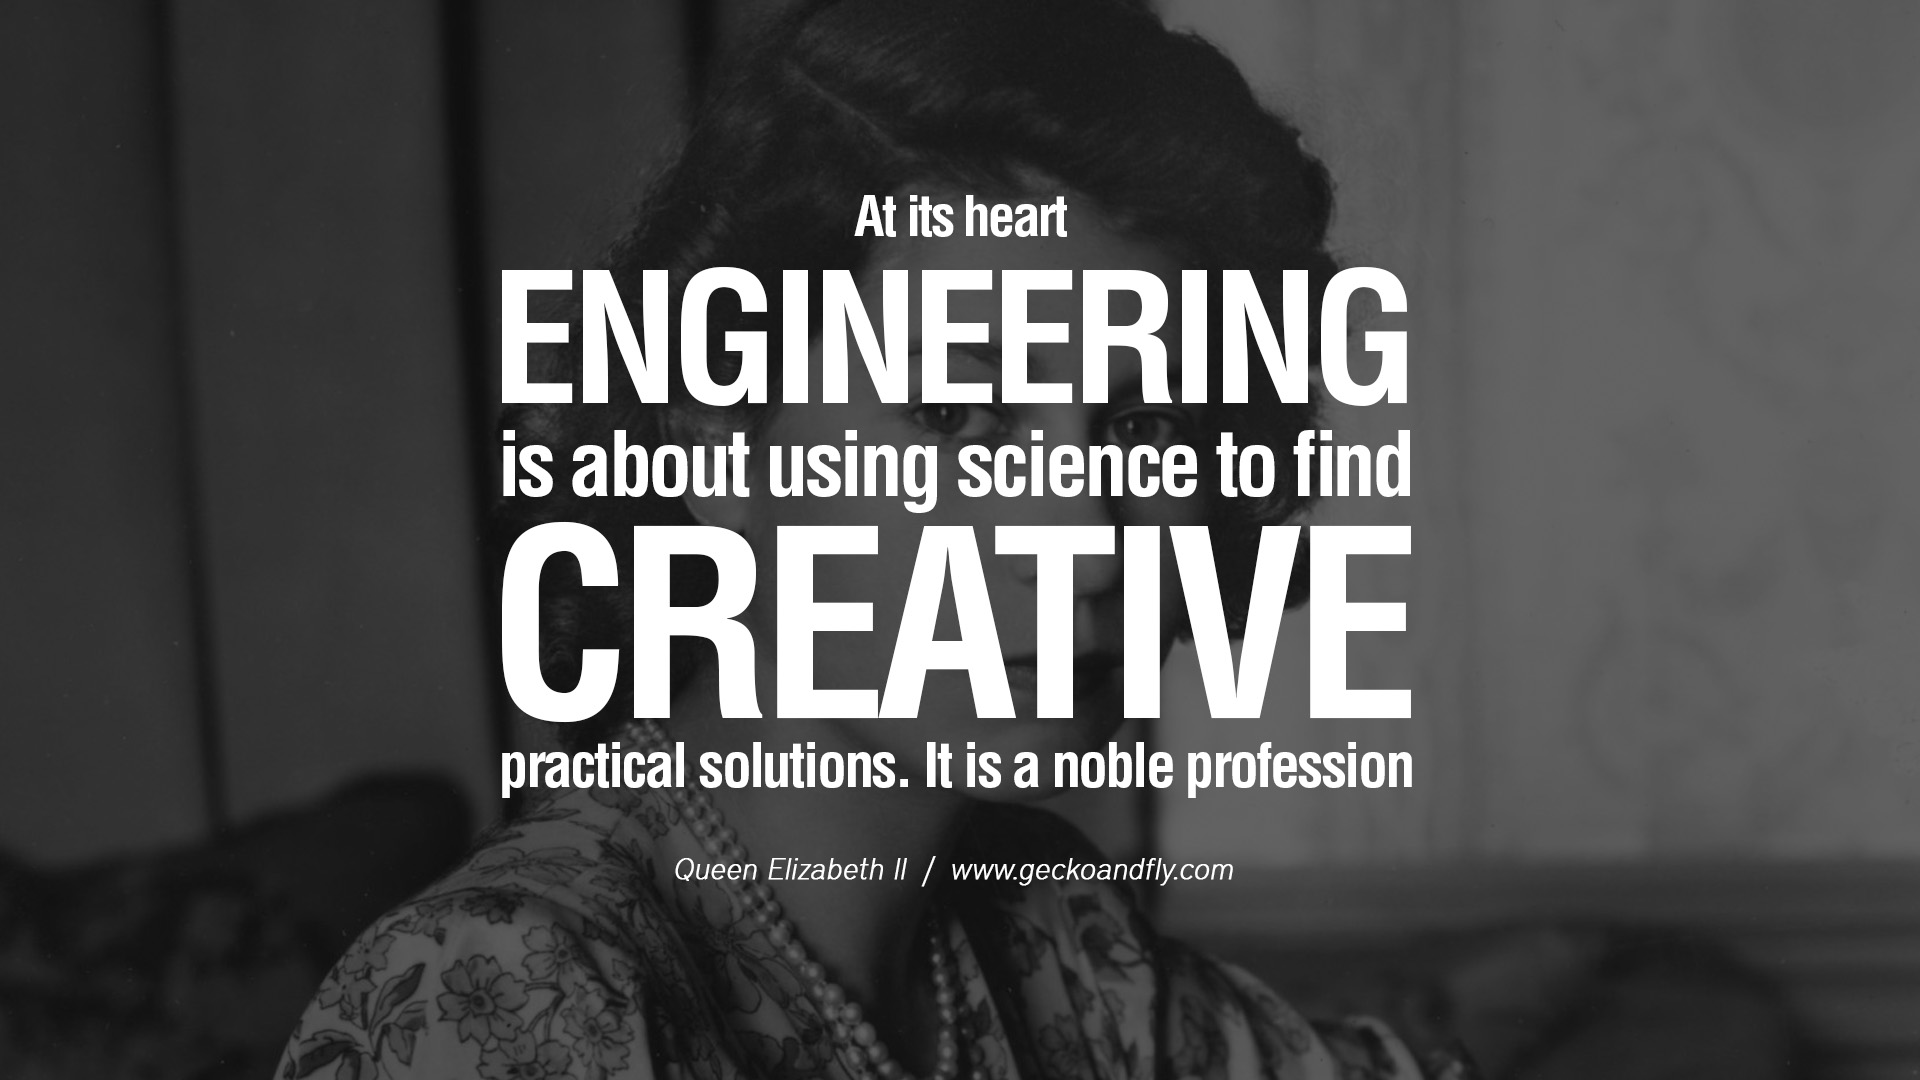 engineering is a very important part Engineering is a very important part of our society, both now and in the past it is a major that opens a wide variety of career opportunities for you after college engineering is what keeps our nation moving and up to date with technology.